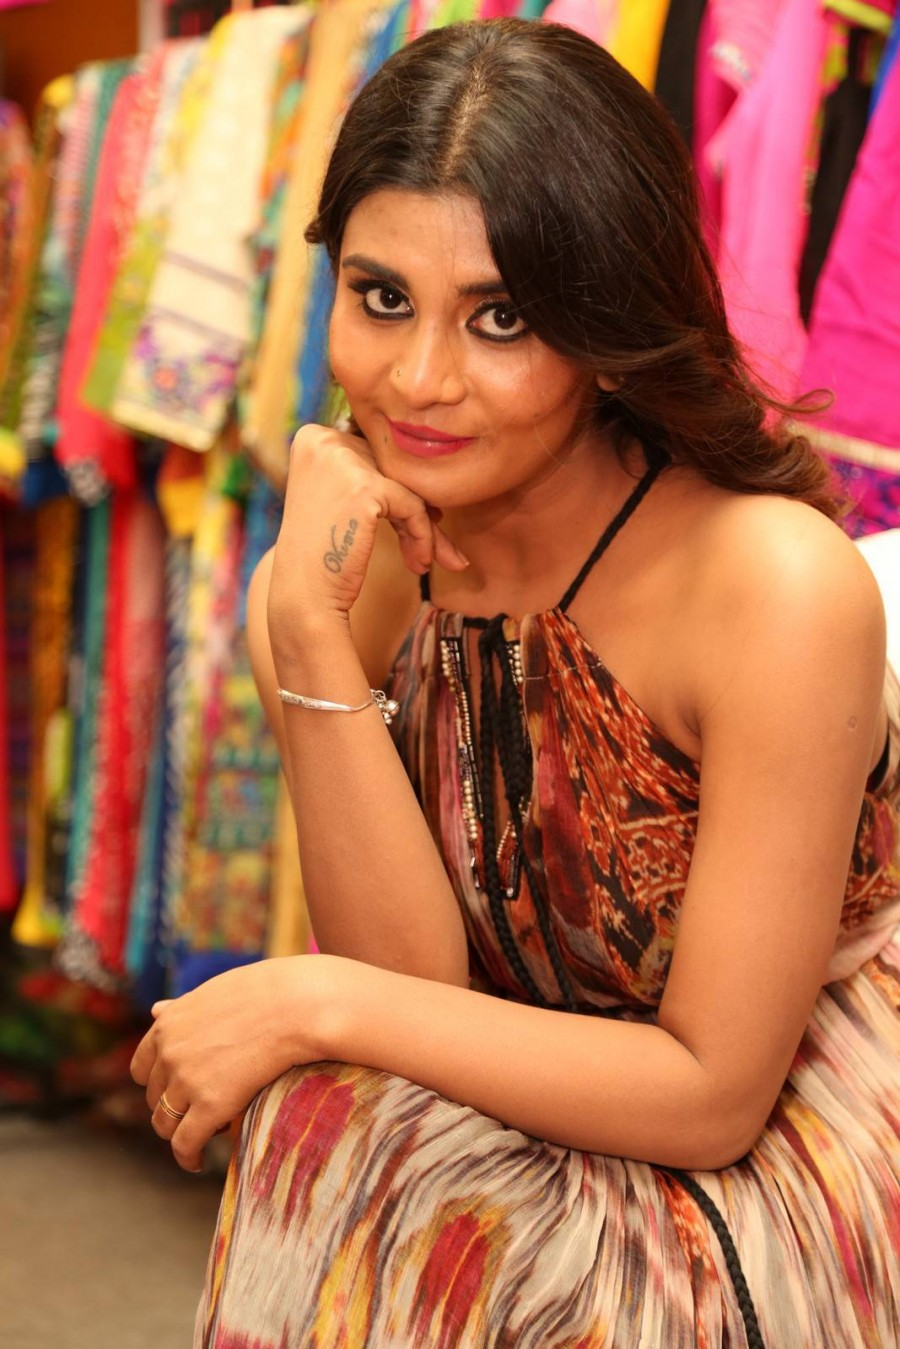 Harini At Fashion Unlimited Expo Launch,Harini,actress Harini,Harini pics,Harini images,Harini photos,Harini stills,south indian actress,actress hot pics,hot Harini,Harini hot pics,Fashion Unlimited Expo Launch